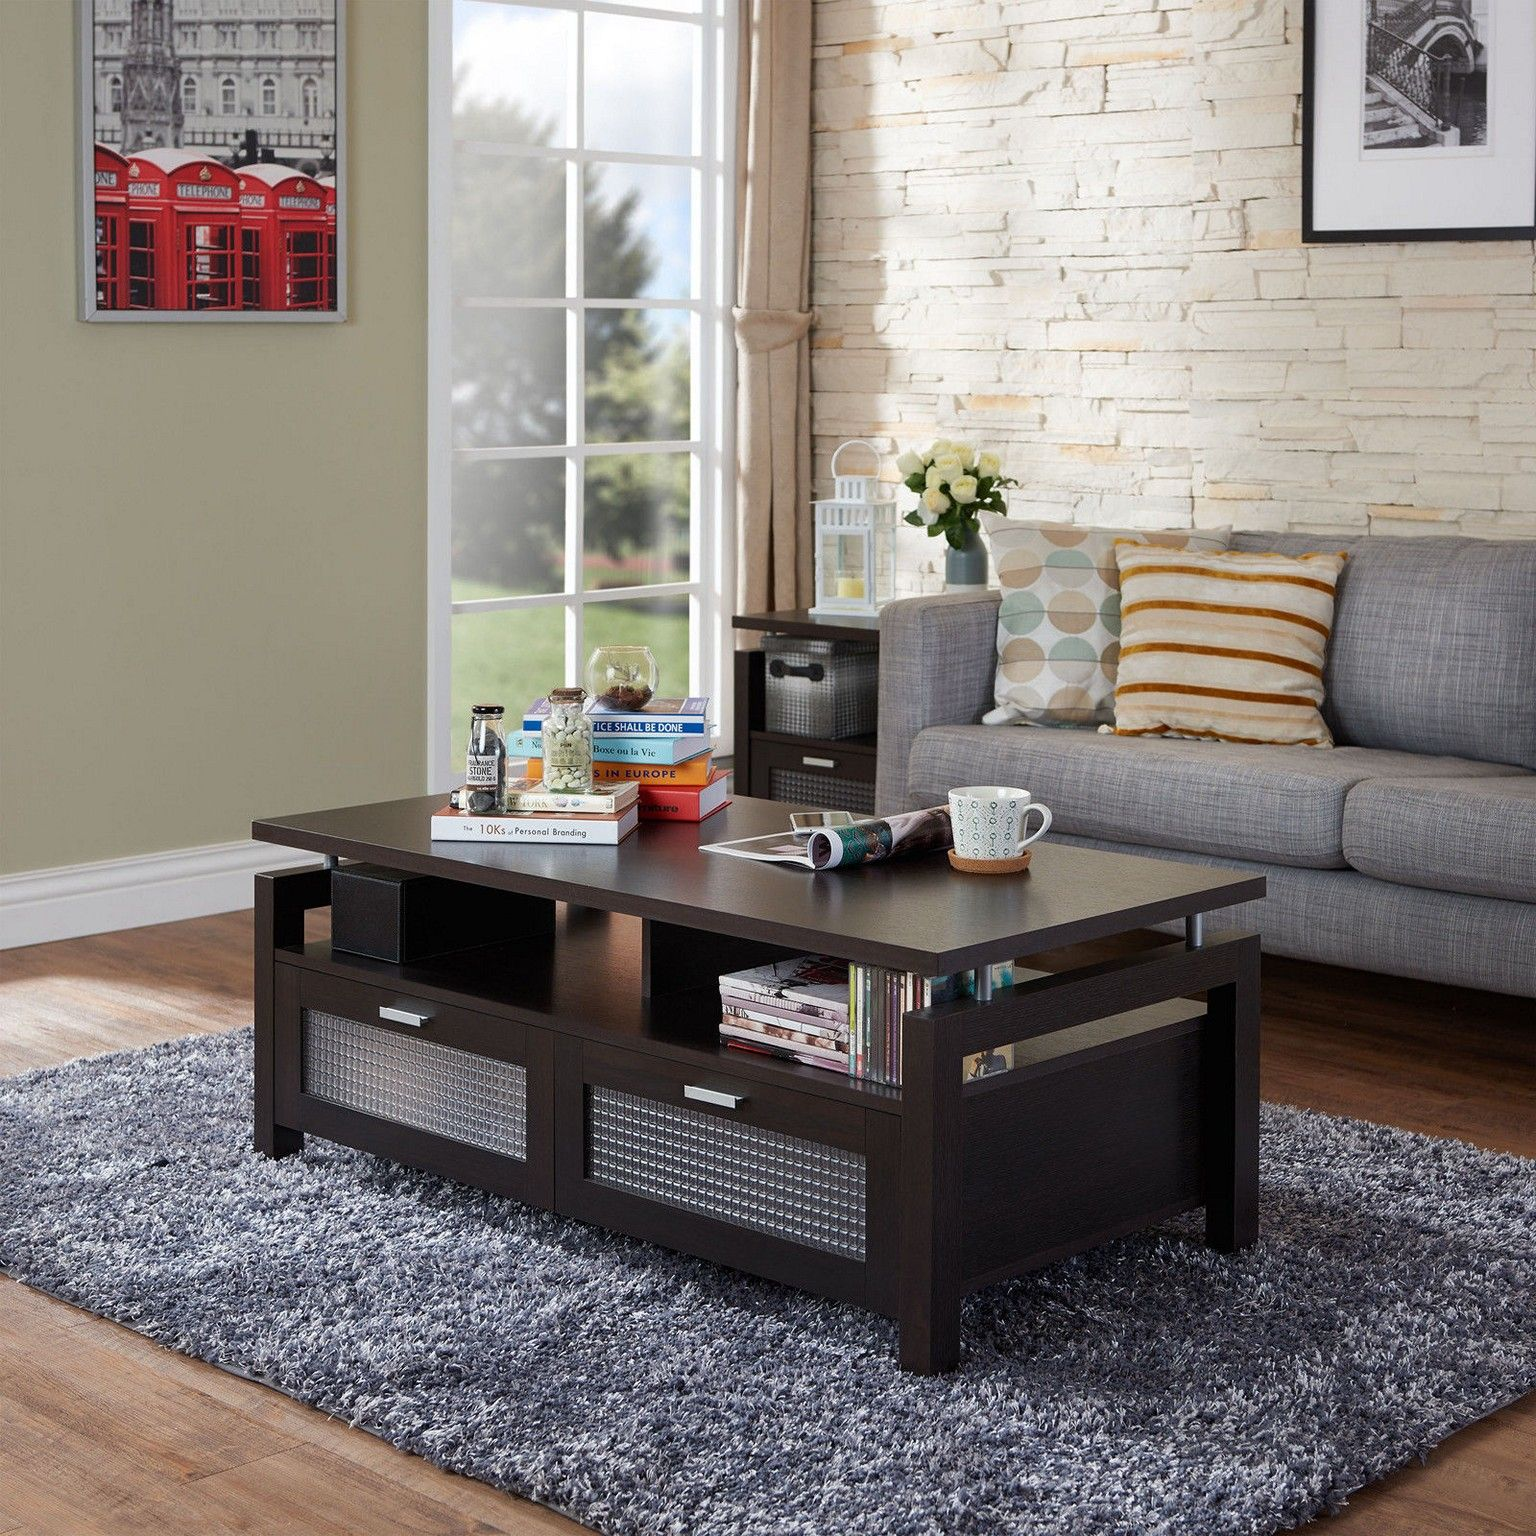 5 ideas for a do it yourself coffee table lets do it solutioingenieria Gallery